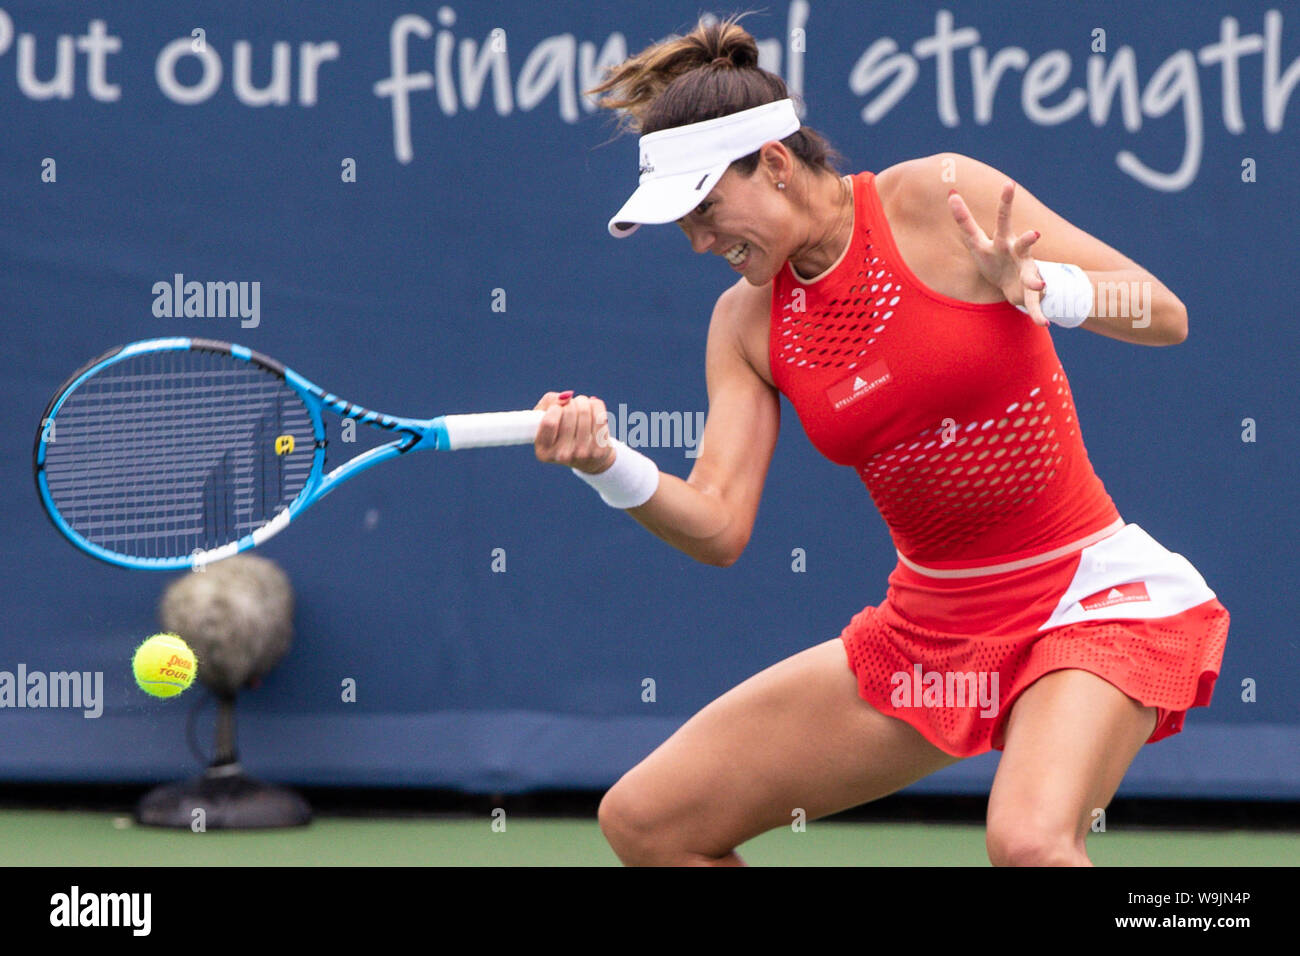 Mason, Ohio, USA. 13th Aug, 2019. Garbine Muguruza (ESP) hits a forehand shot during Tuesday's round of the Western and Southern Open at the Lindner Family Tennis Center, Mason, Oh. Credit: Scott Stuart/ZUMA Wire/Alamy Live News Stock Photo